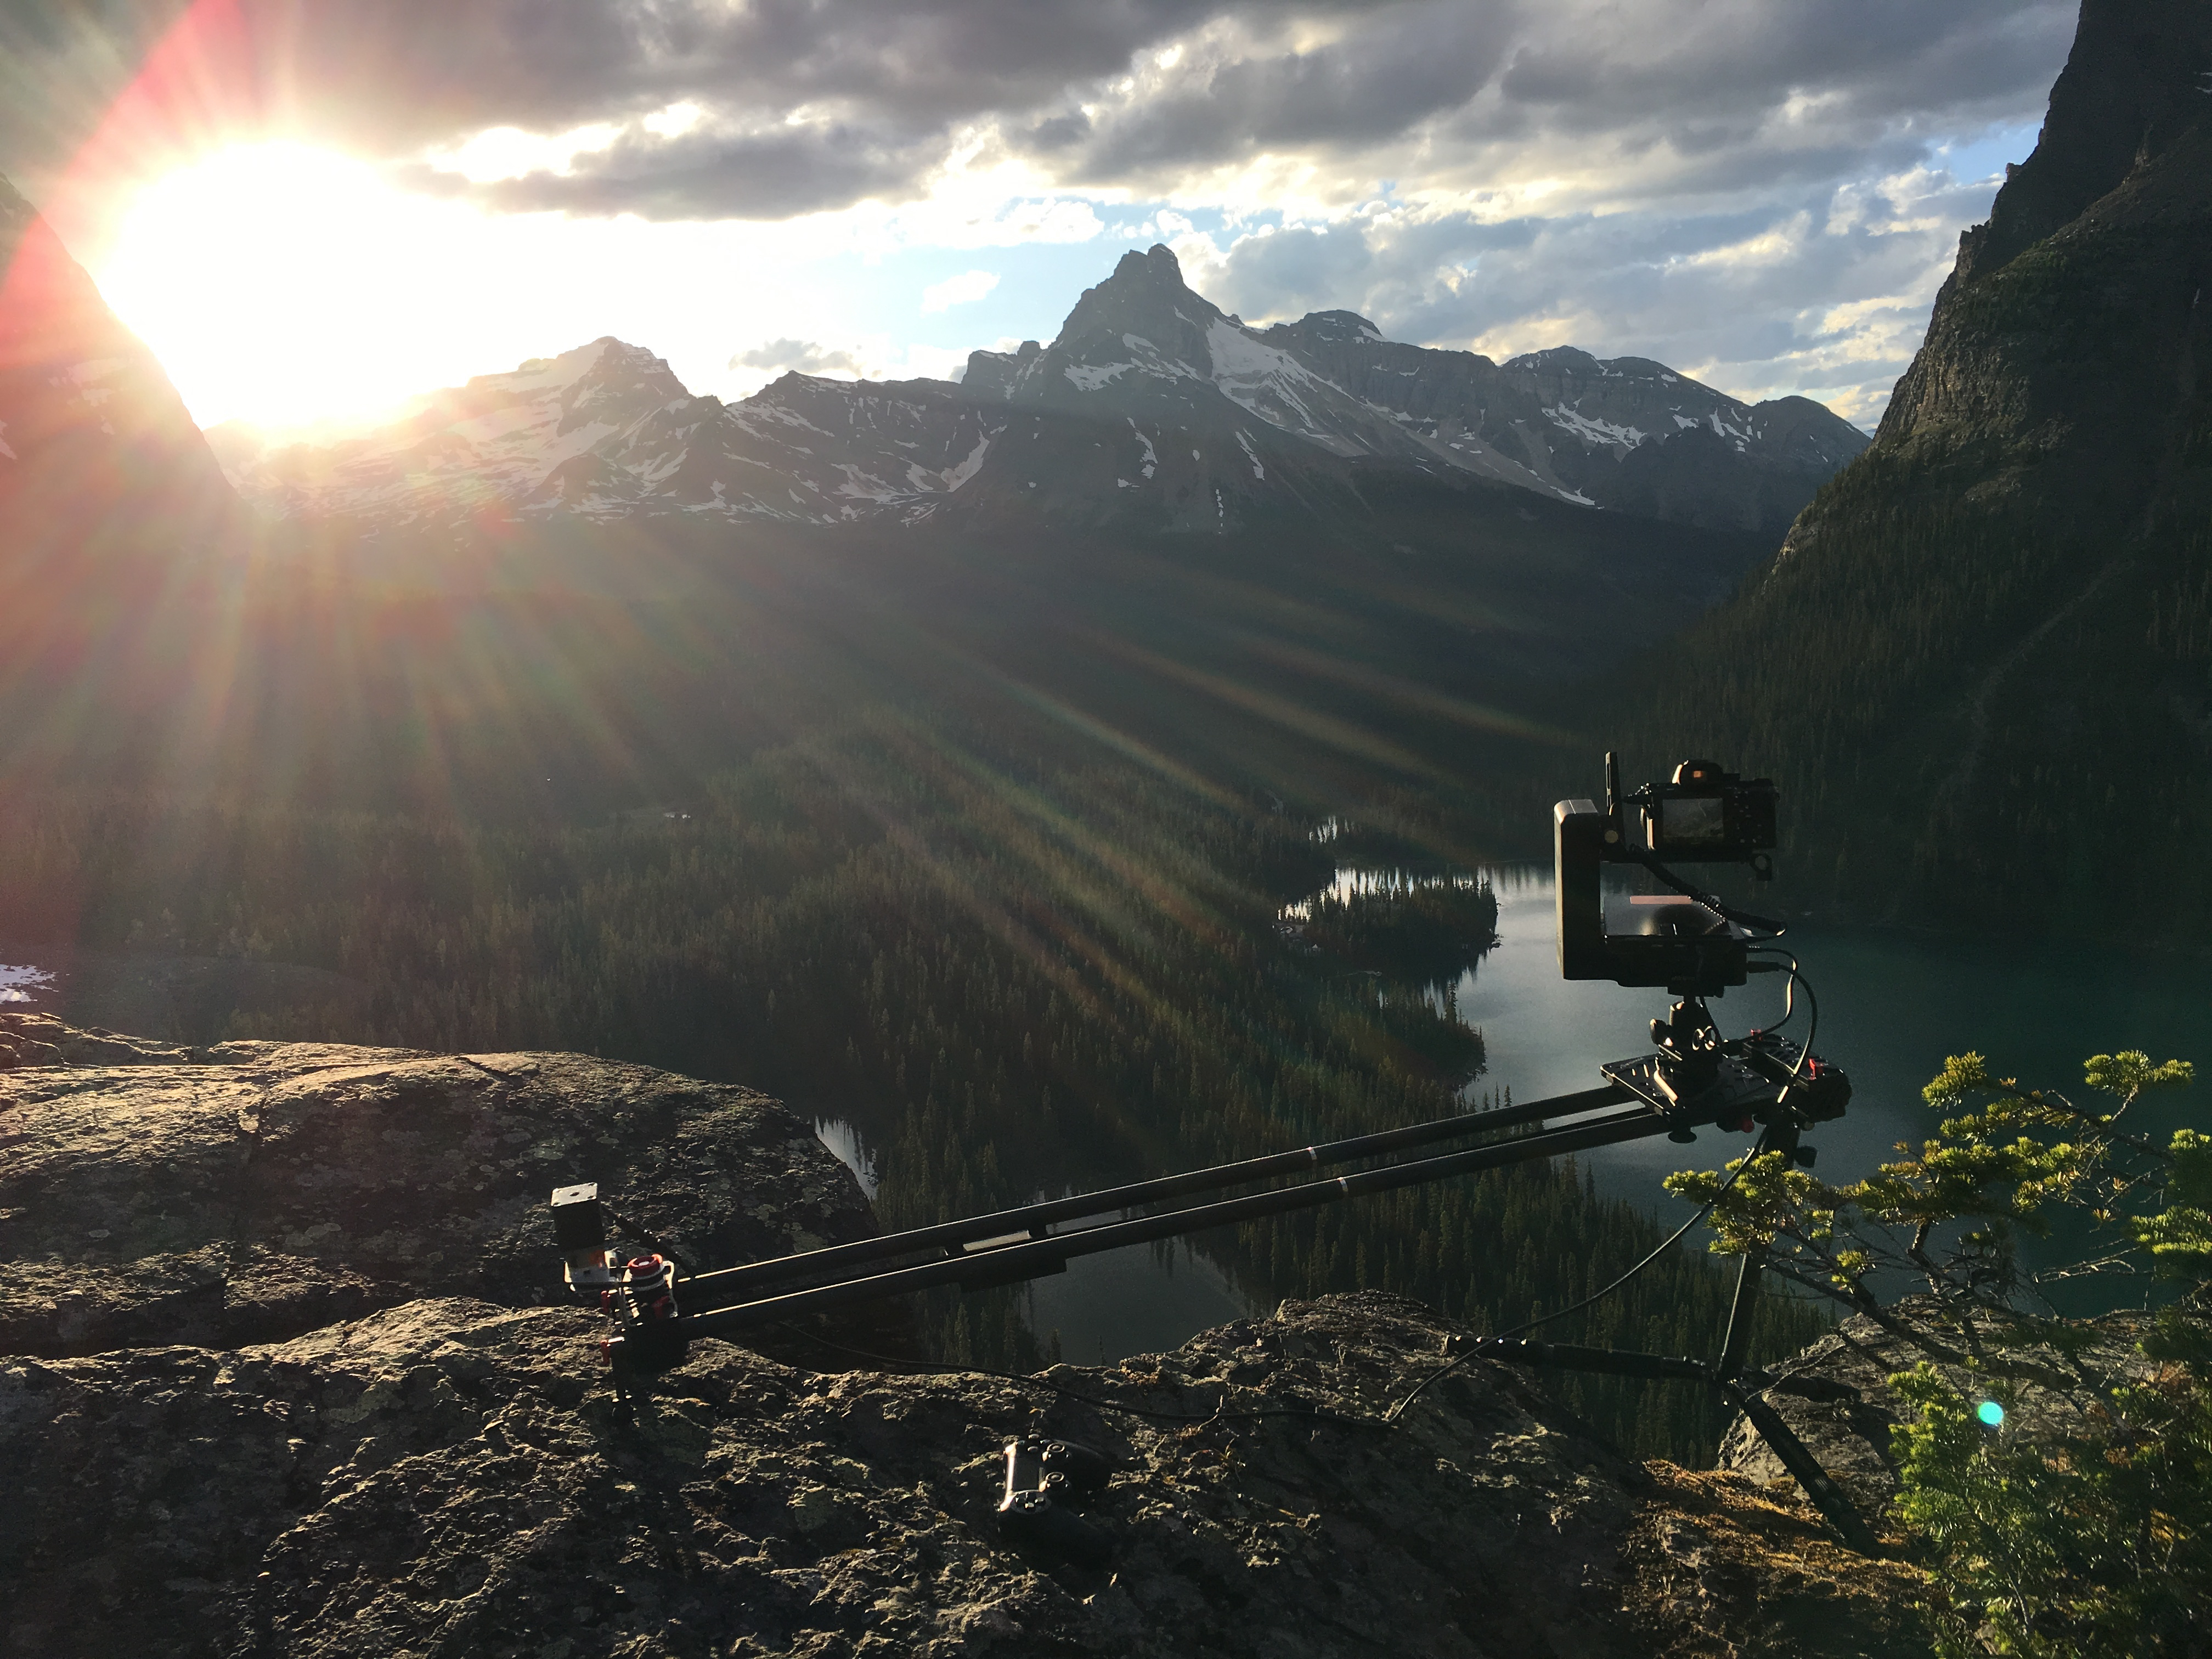 Behind the scenes: Shooting a motion time-lapse in the